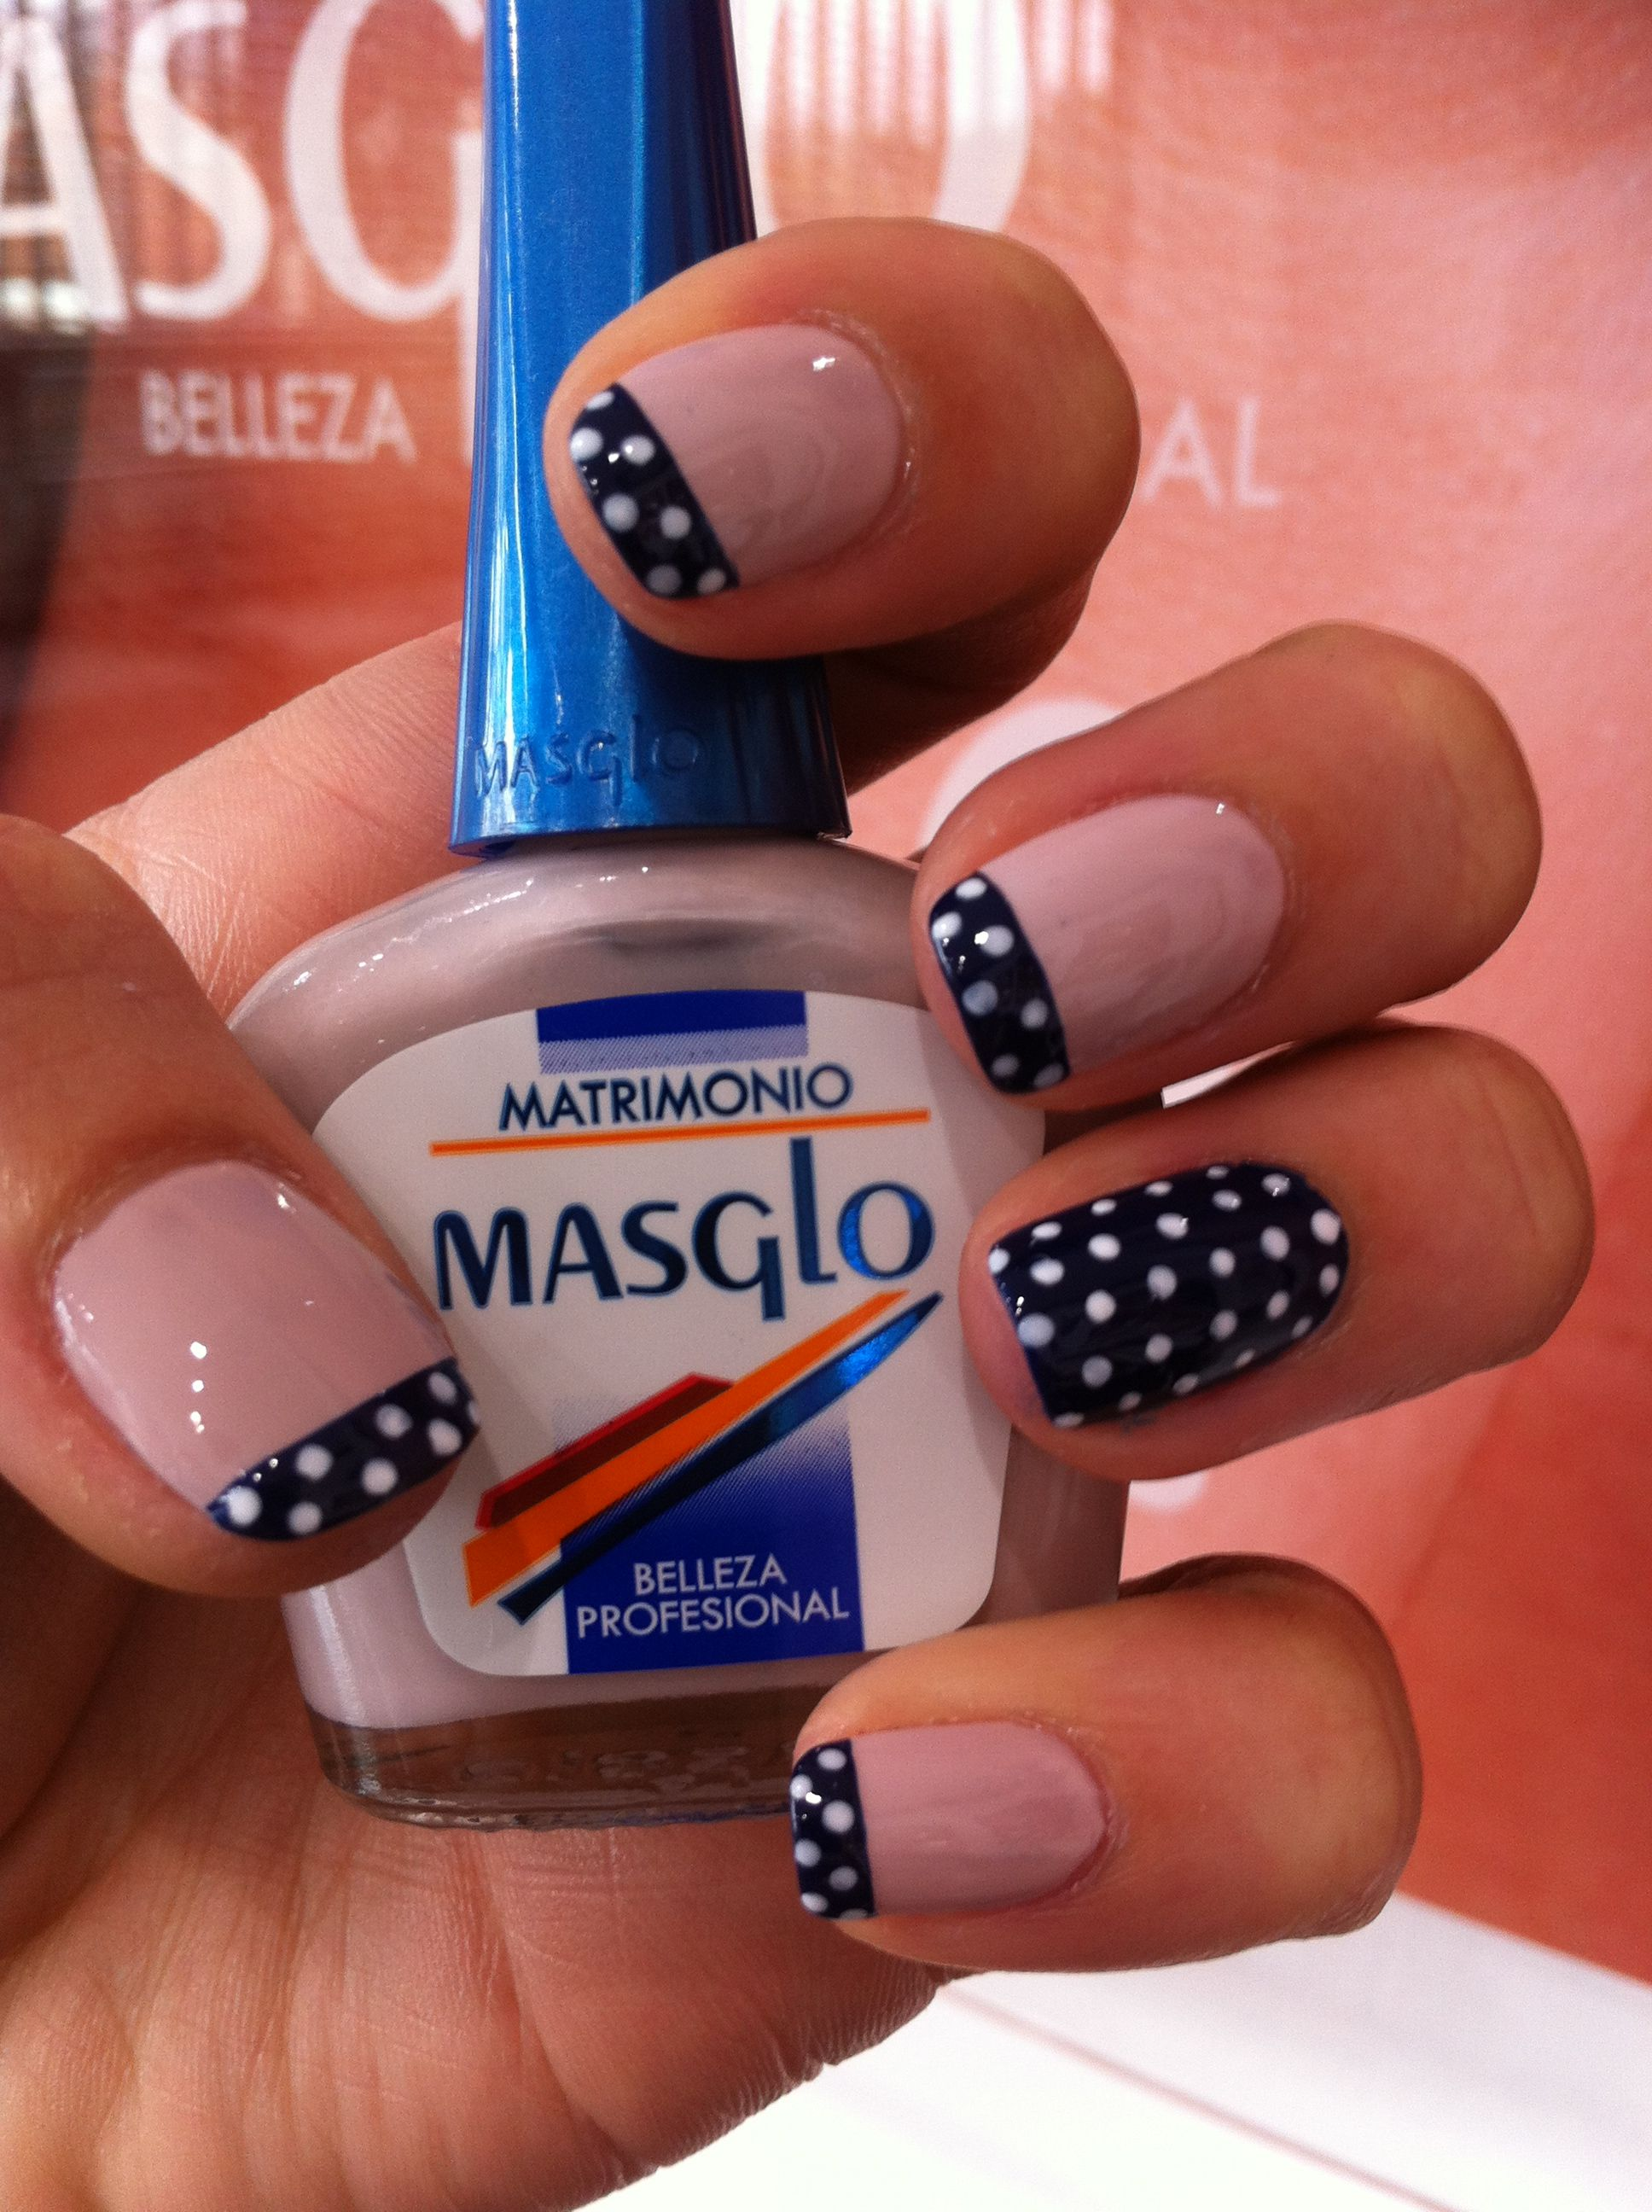 Matrimonio De Masglo Nails